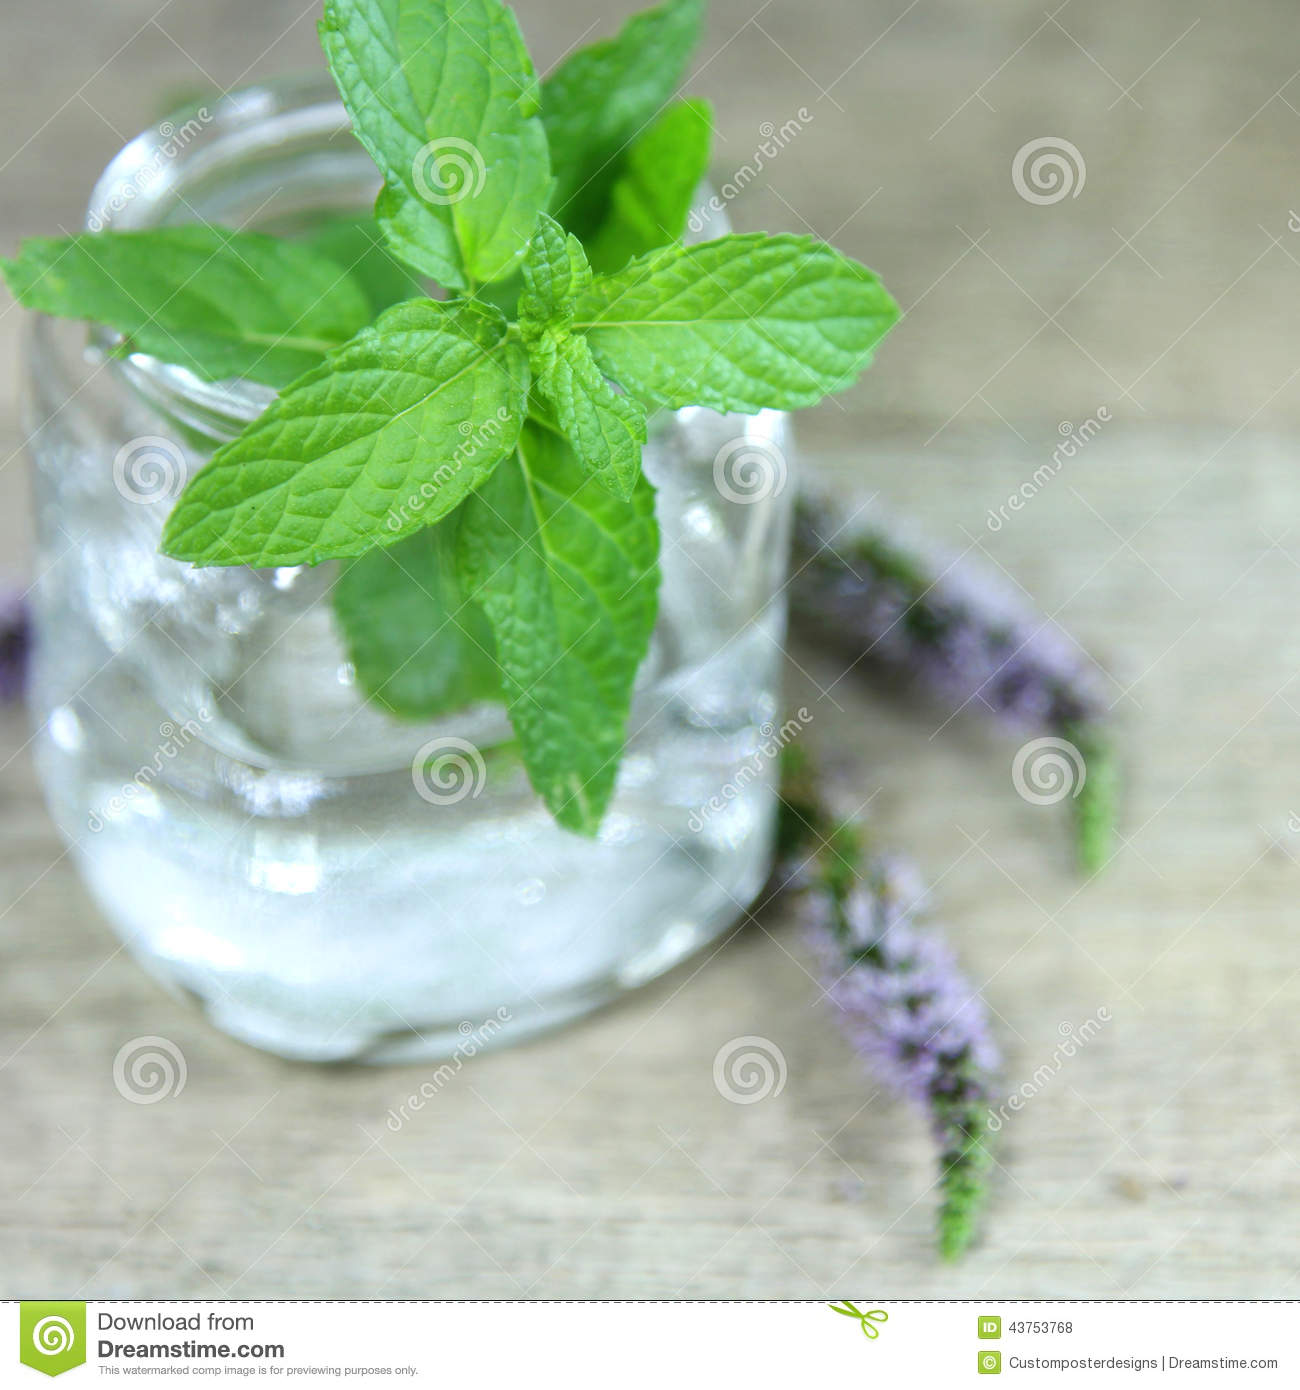 Download Fresh Green Mint Plant Leaves In A Small Jar. Stock Photo - Image of life, nature: 43753768